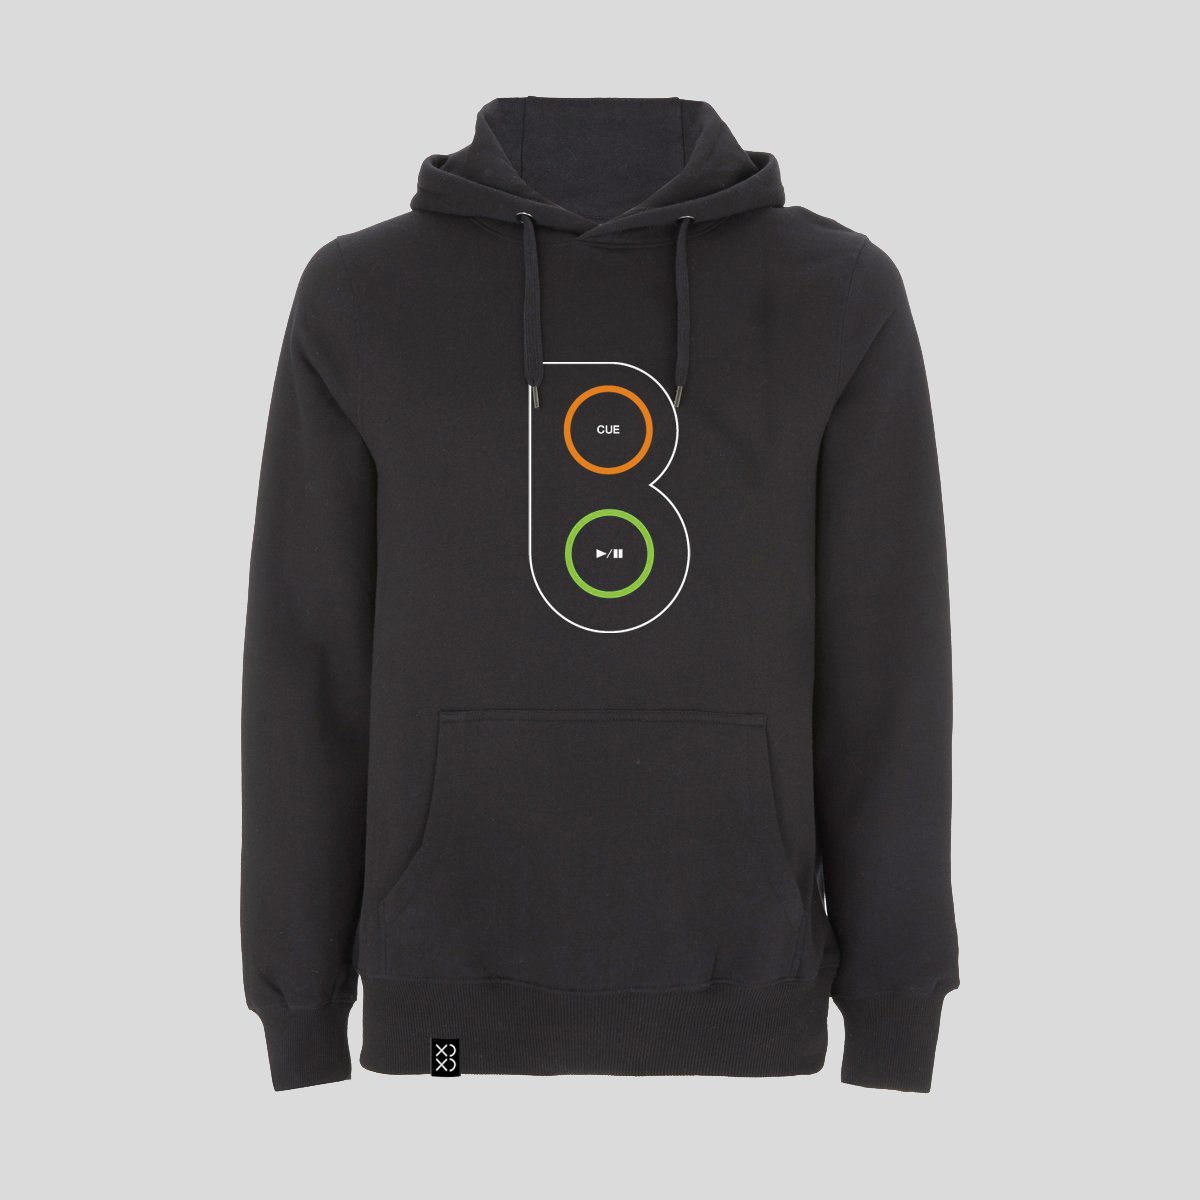 Bedrock CDB Limited Edition Hoody - Black